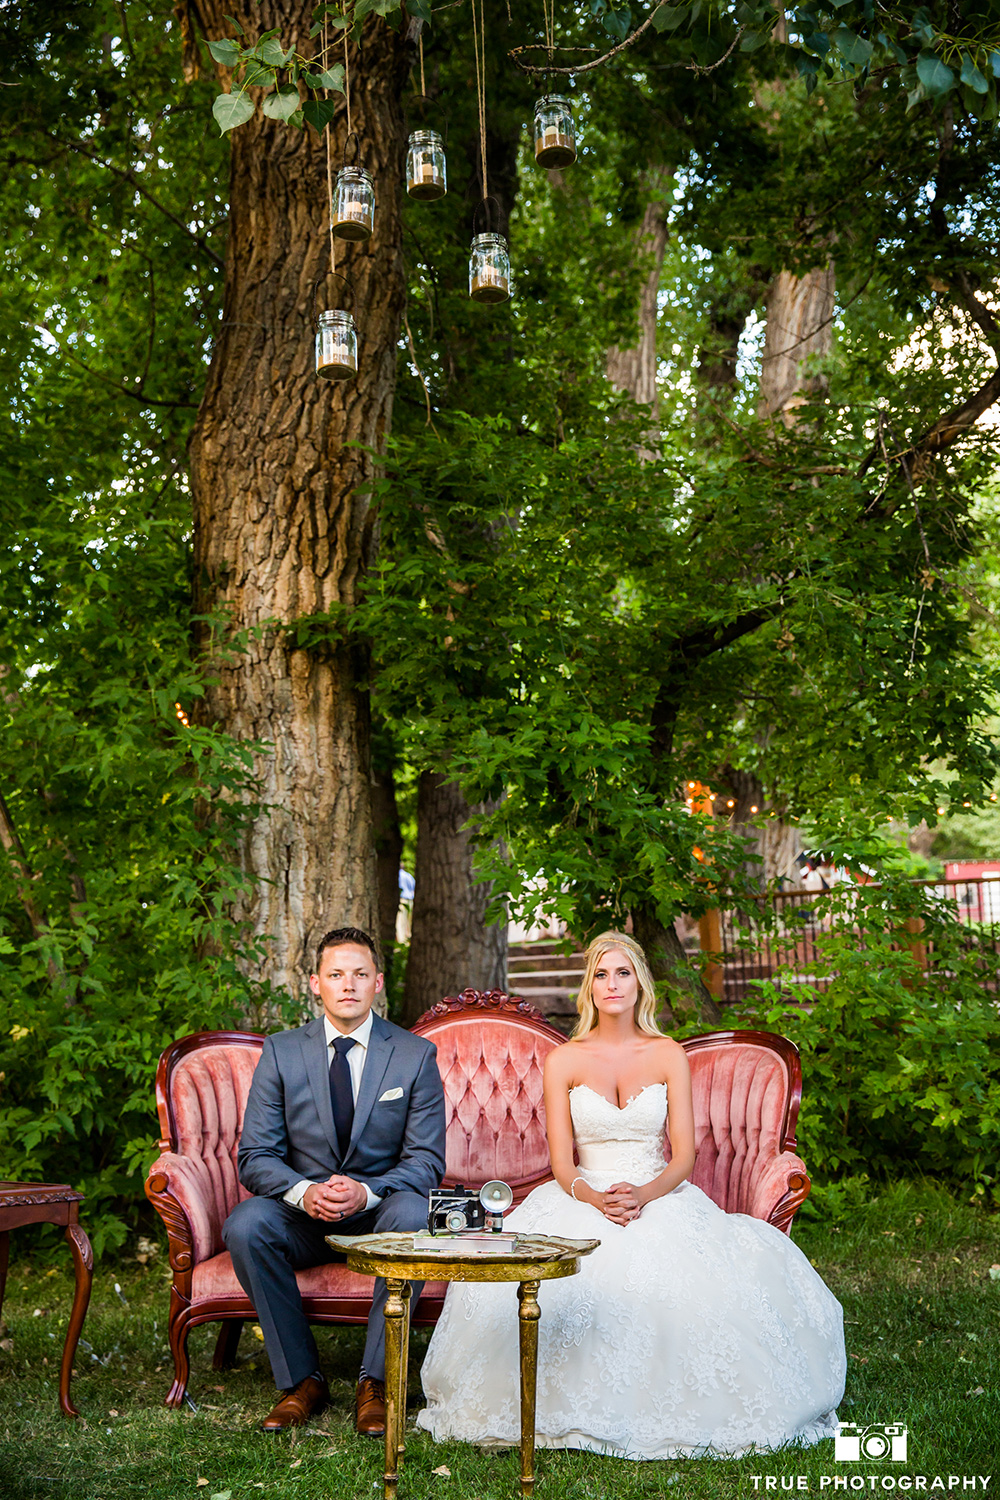 true-photography-lyons-farmette-colorado-wedding-venue-03.jpg